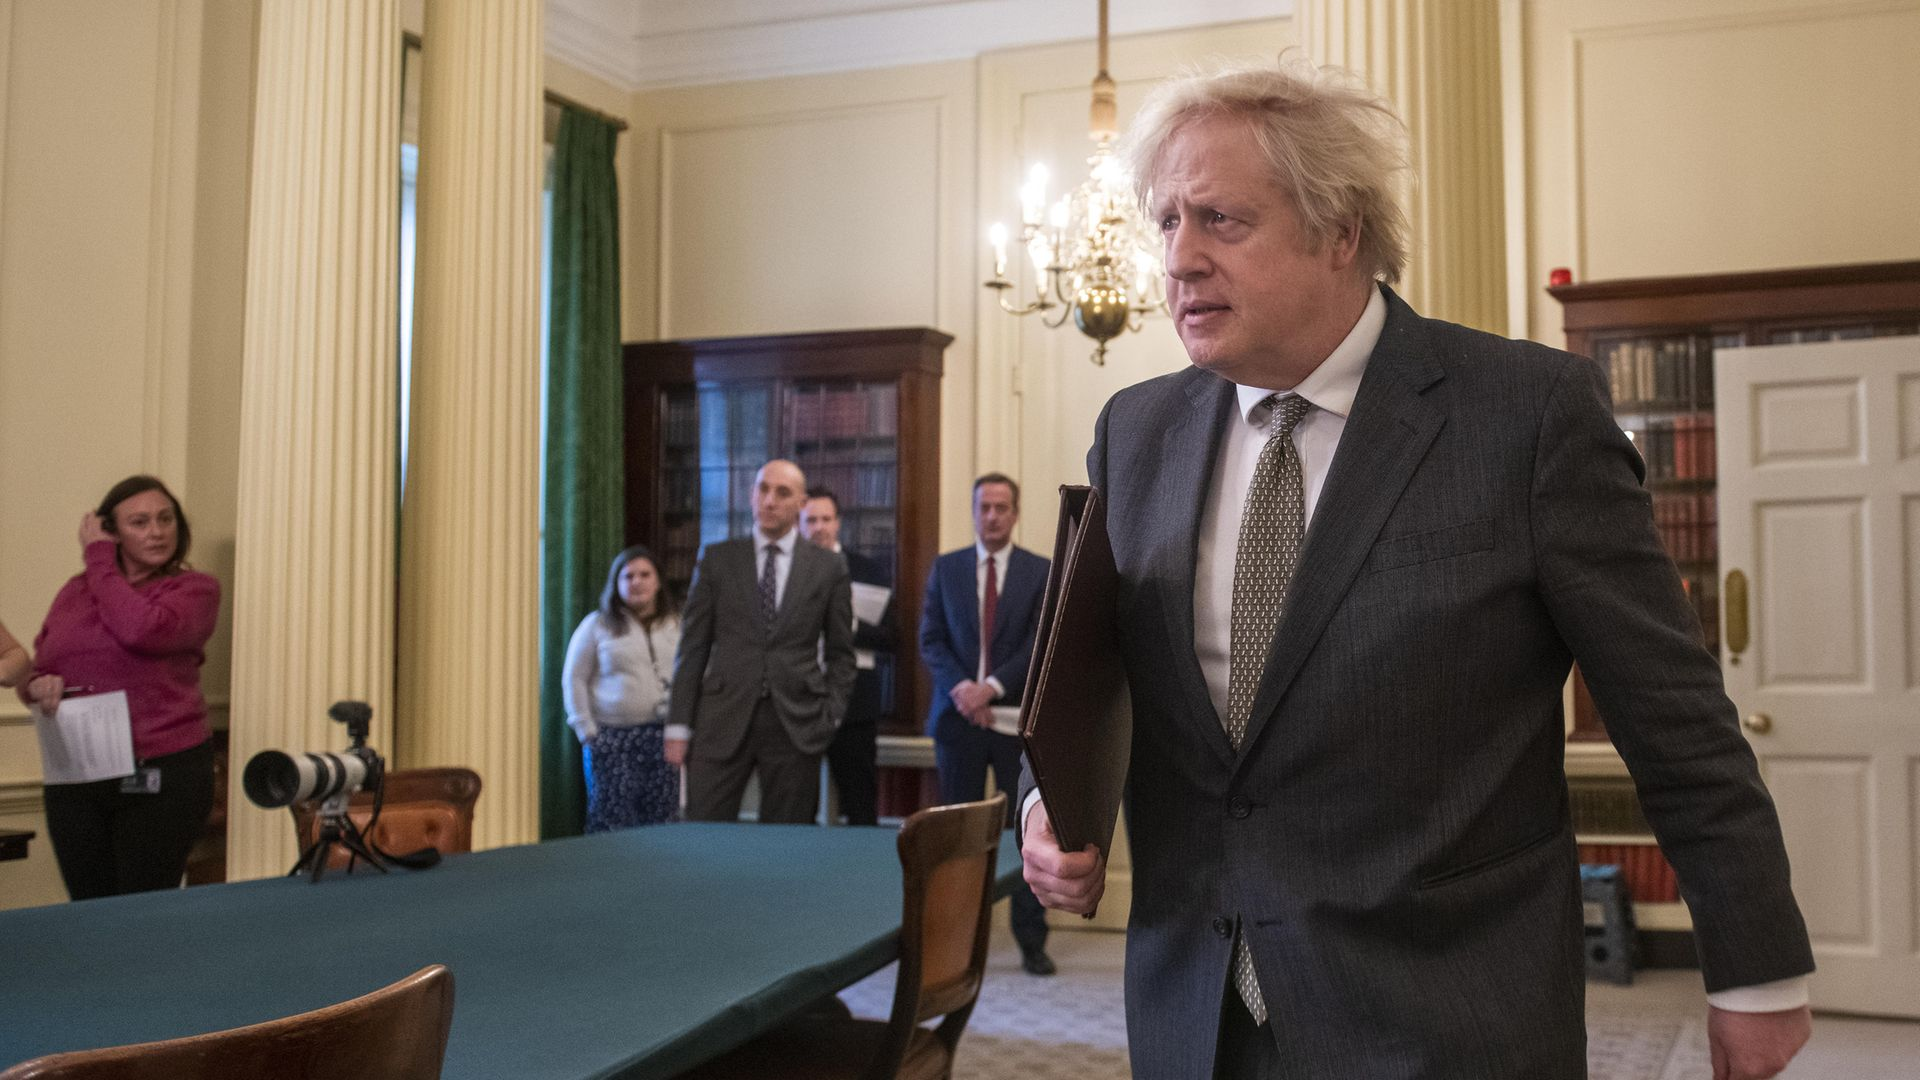 Prime Minister Boris Johnson arriving in the Cabinet Room - Credit: PA